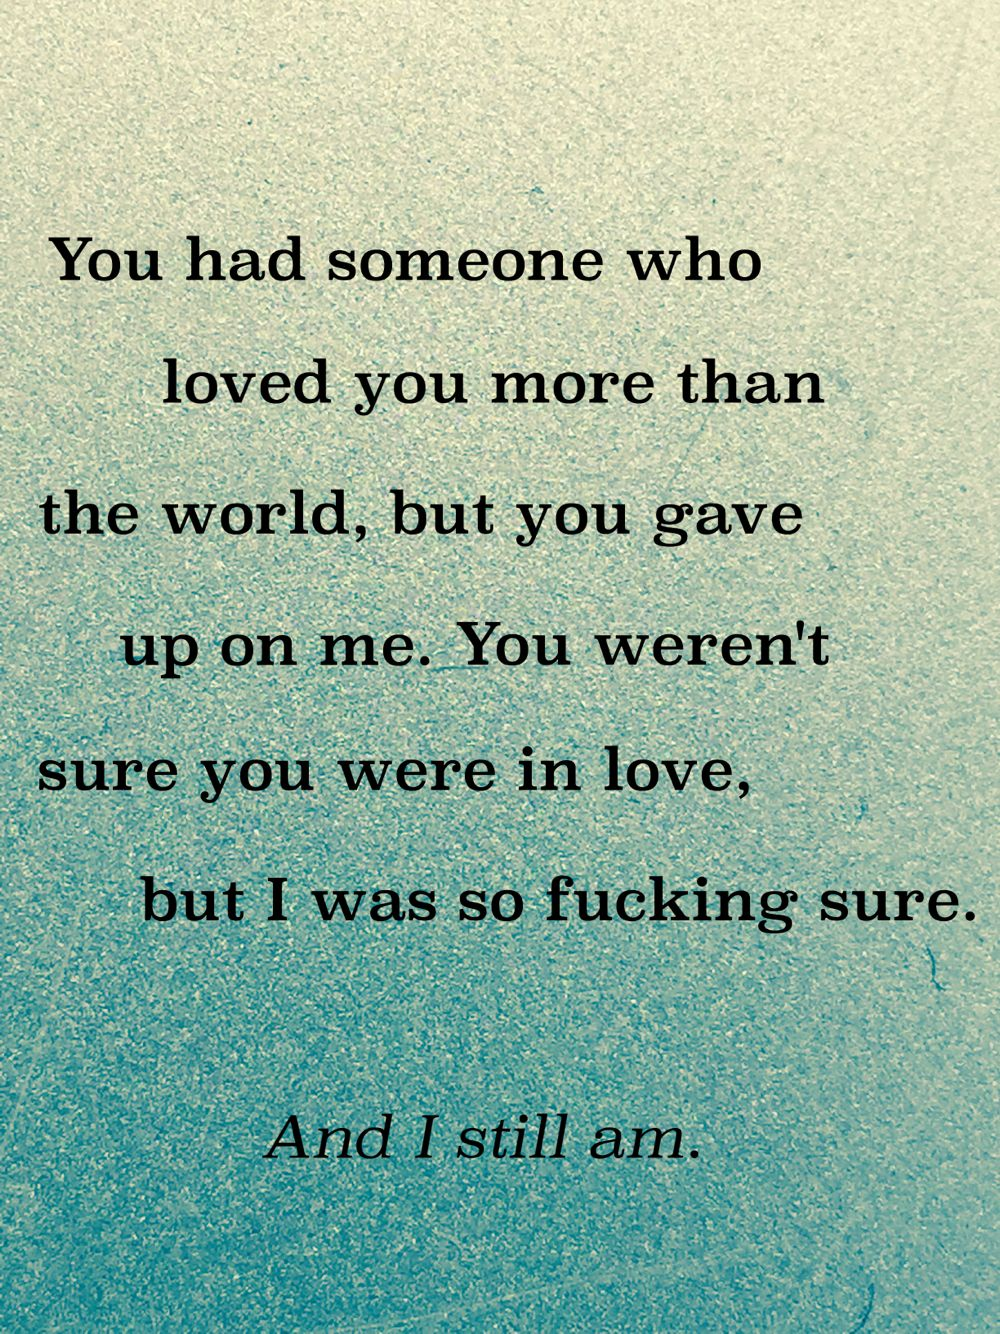 You Had Someone Who Loved You More Than The World But You Gave Up